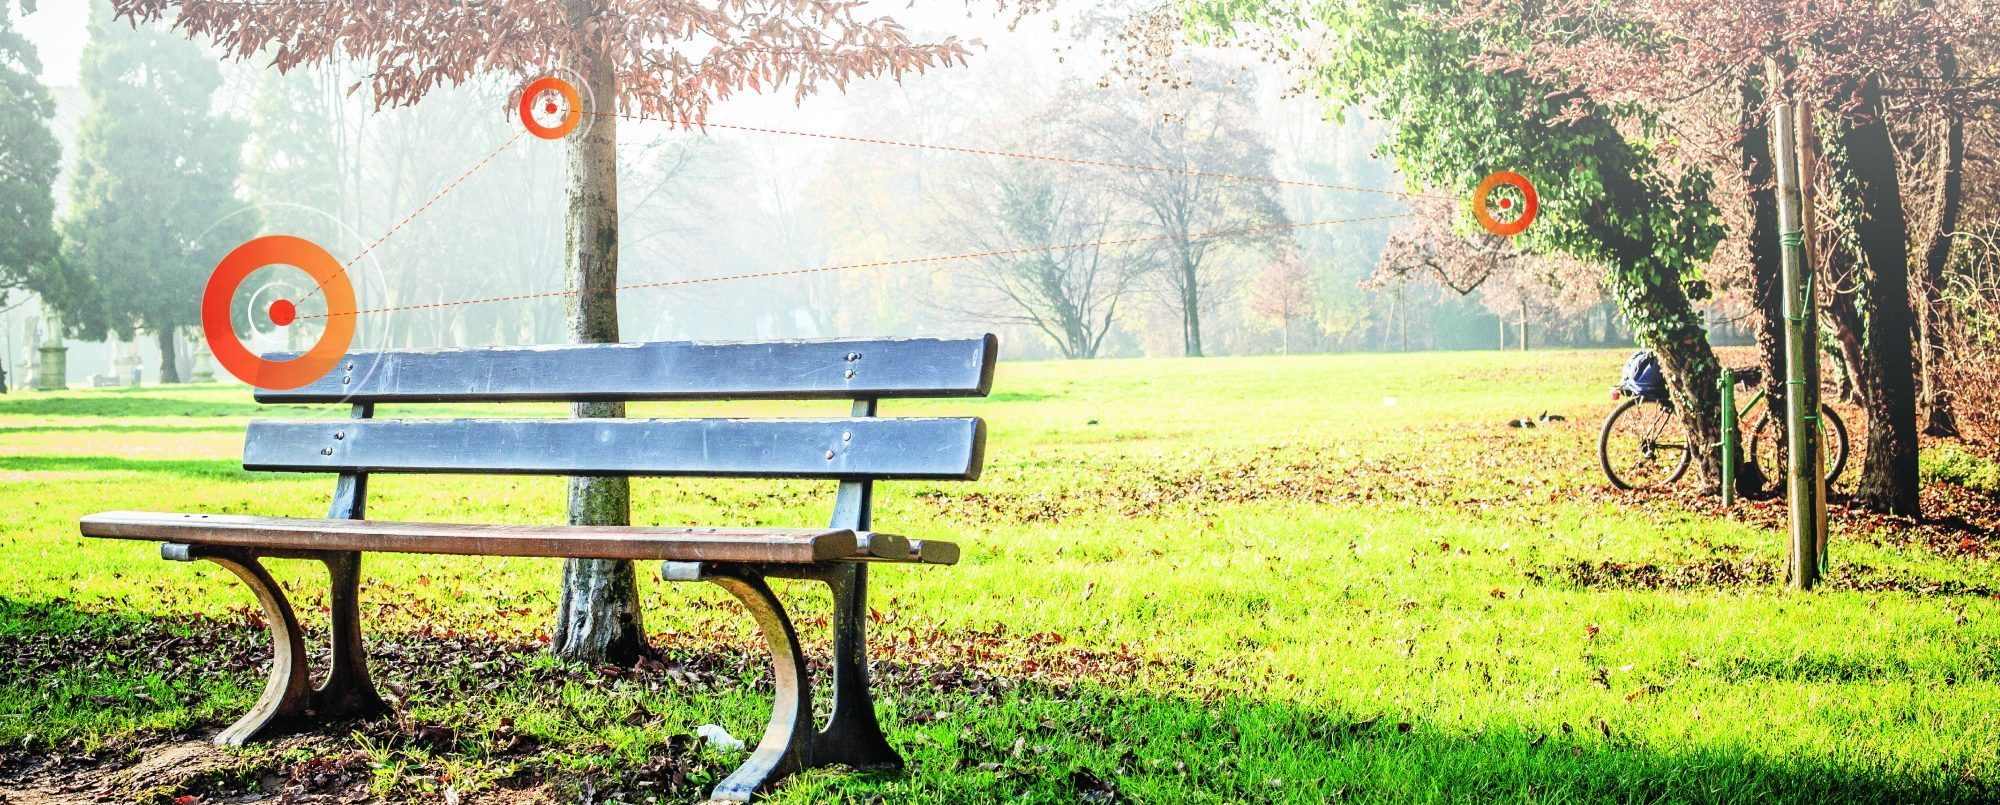 Park bench with GIS